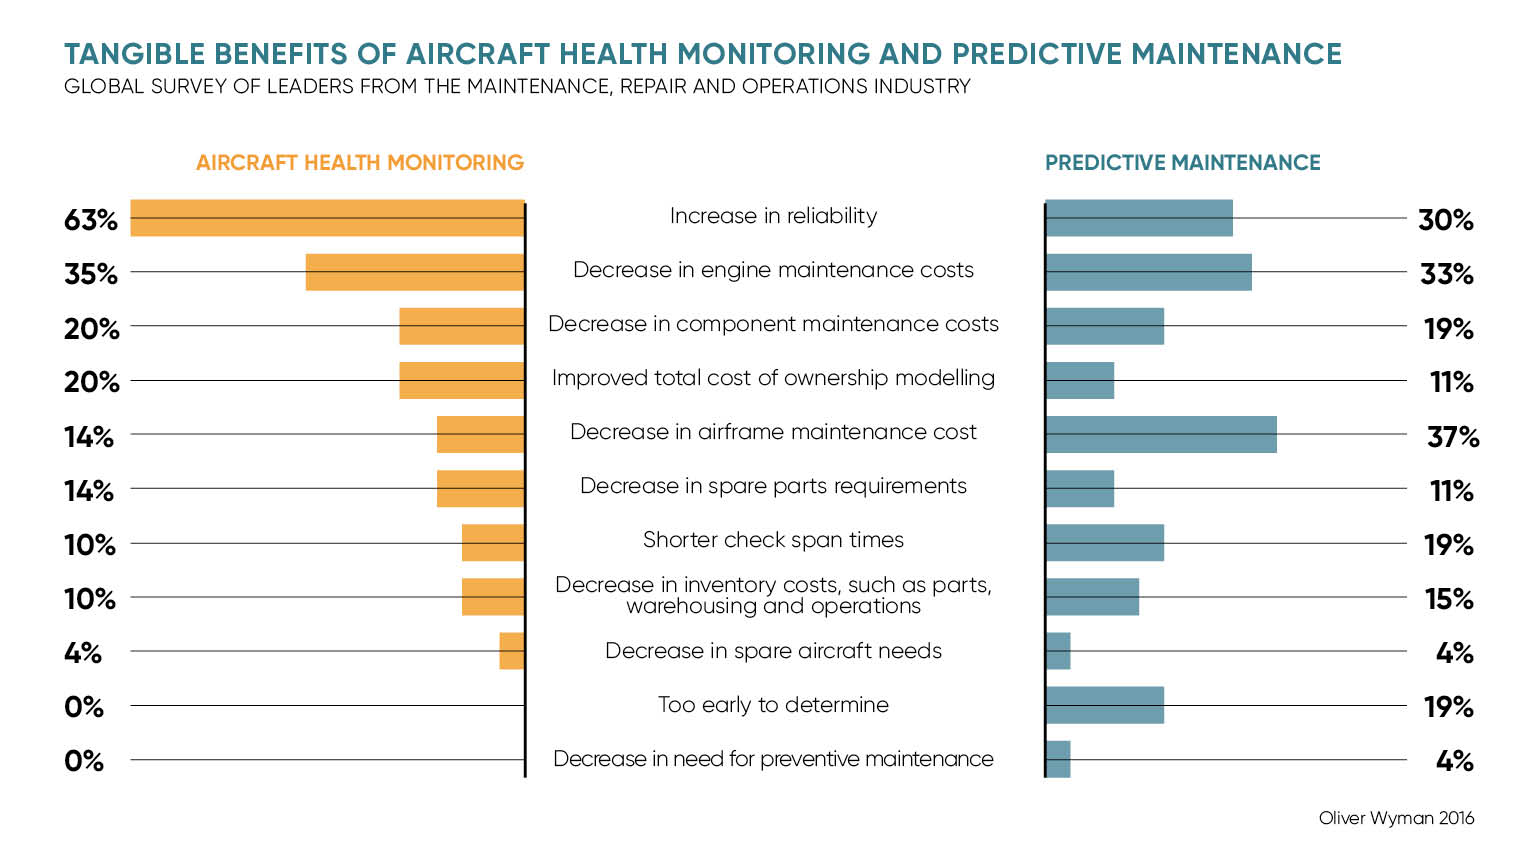 TANGIBLE BENEFITS OF AIRCRAFT HEALTH MONITORING AND PREDICTIVE MAINTENANCE